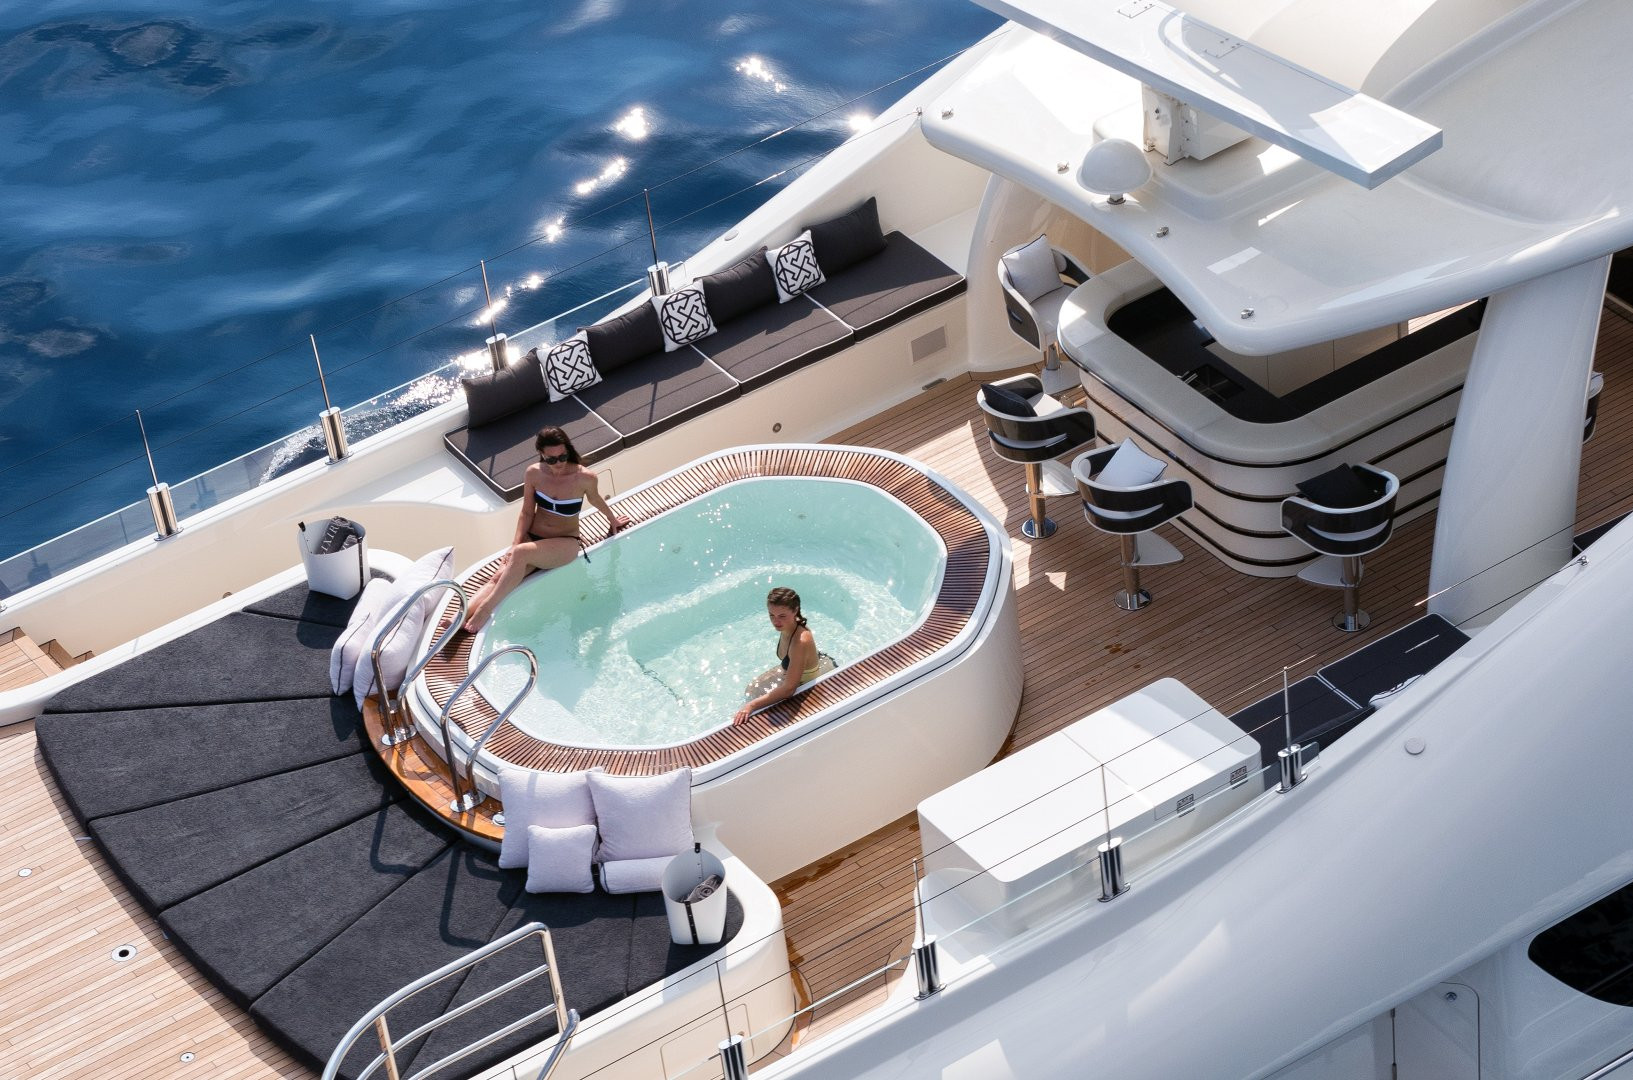 Super yacht ELIXIR - charter guests chilling out in the pool!